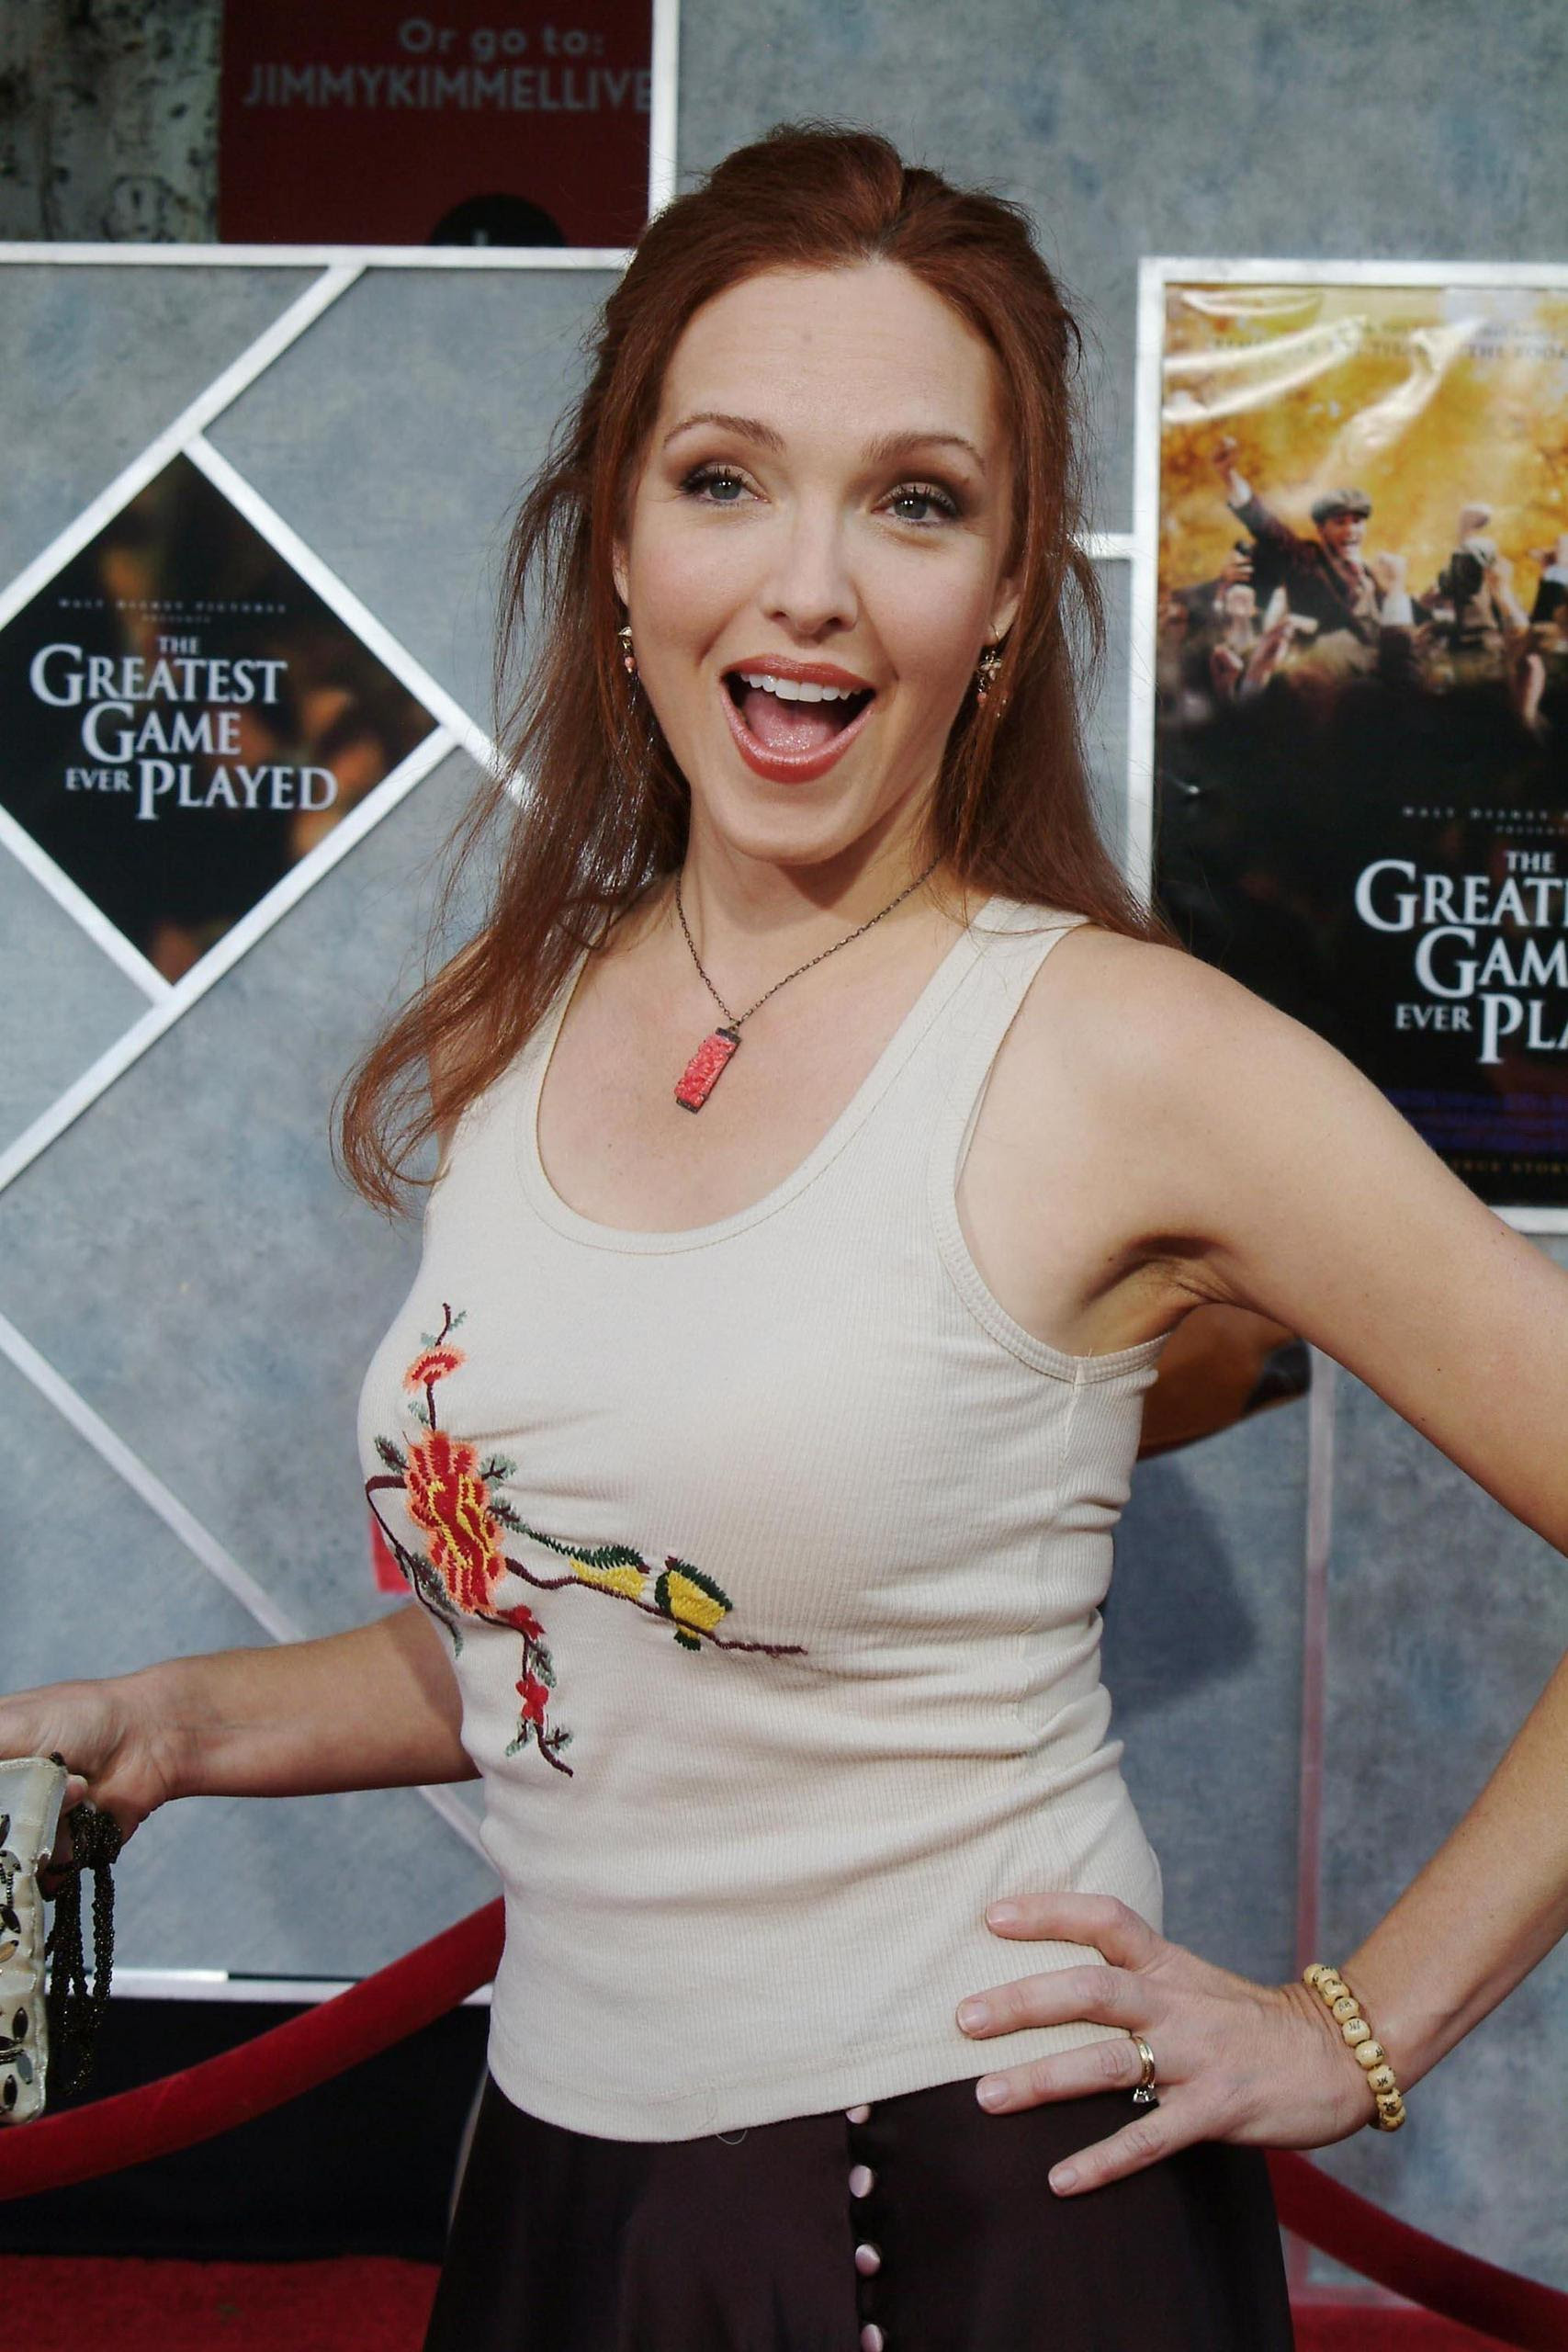 10+ Best Photos of Amy Yasbeck - Swanty Gallery